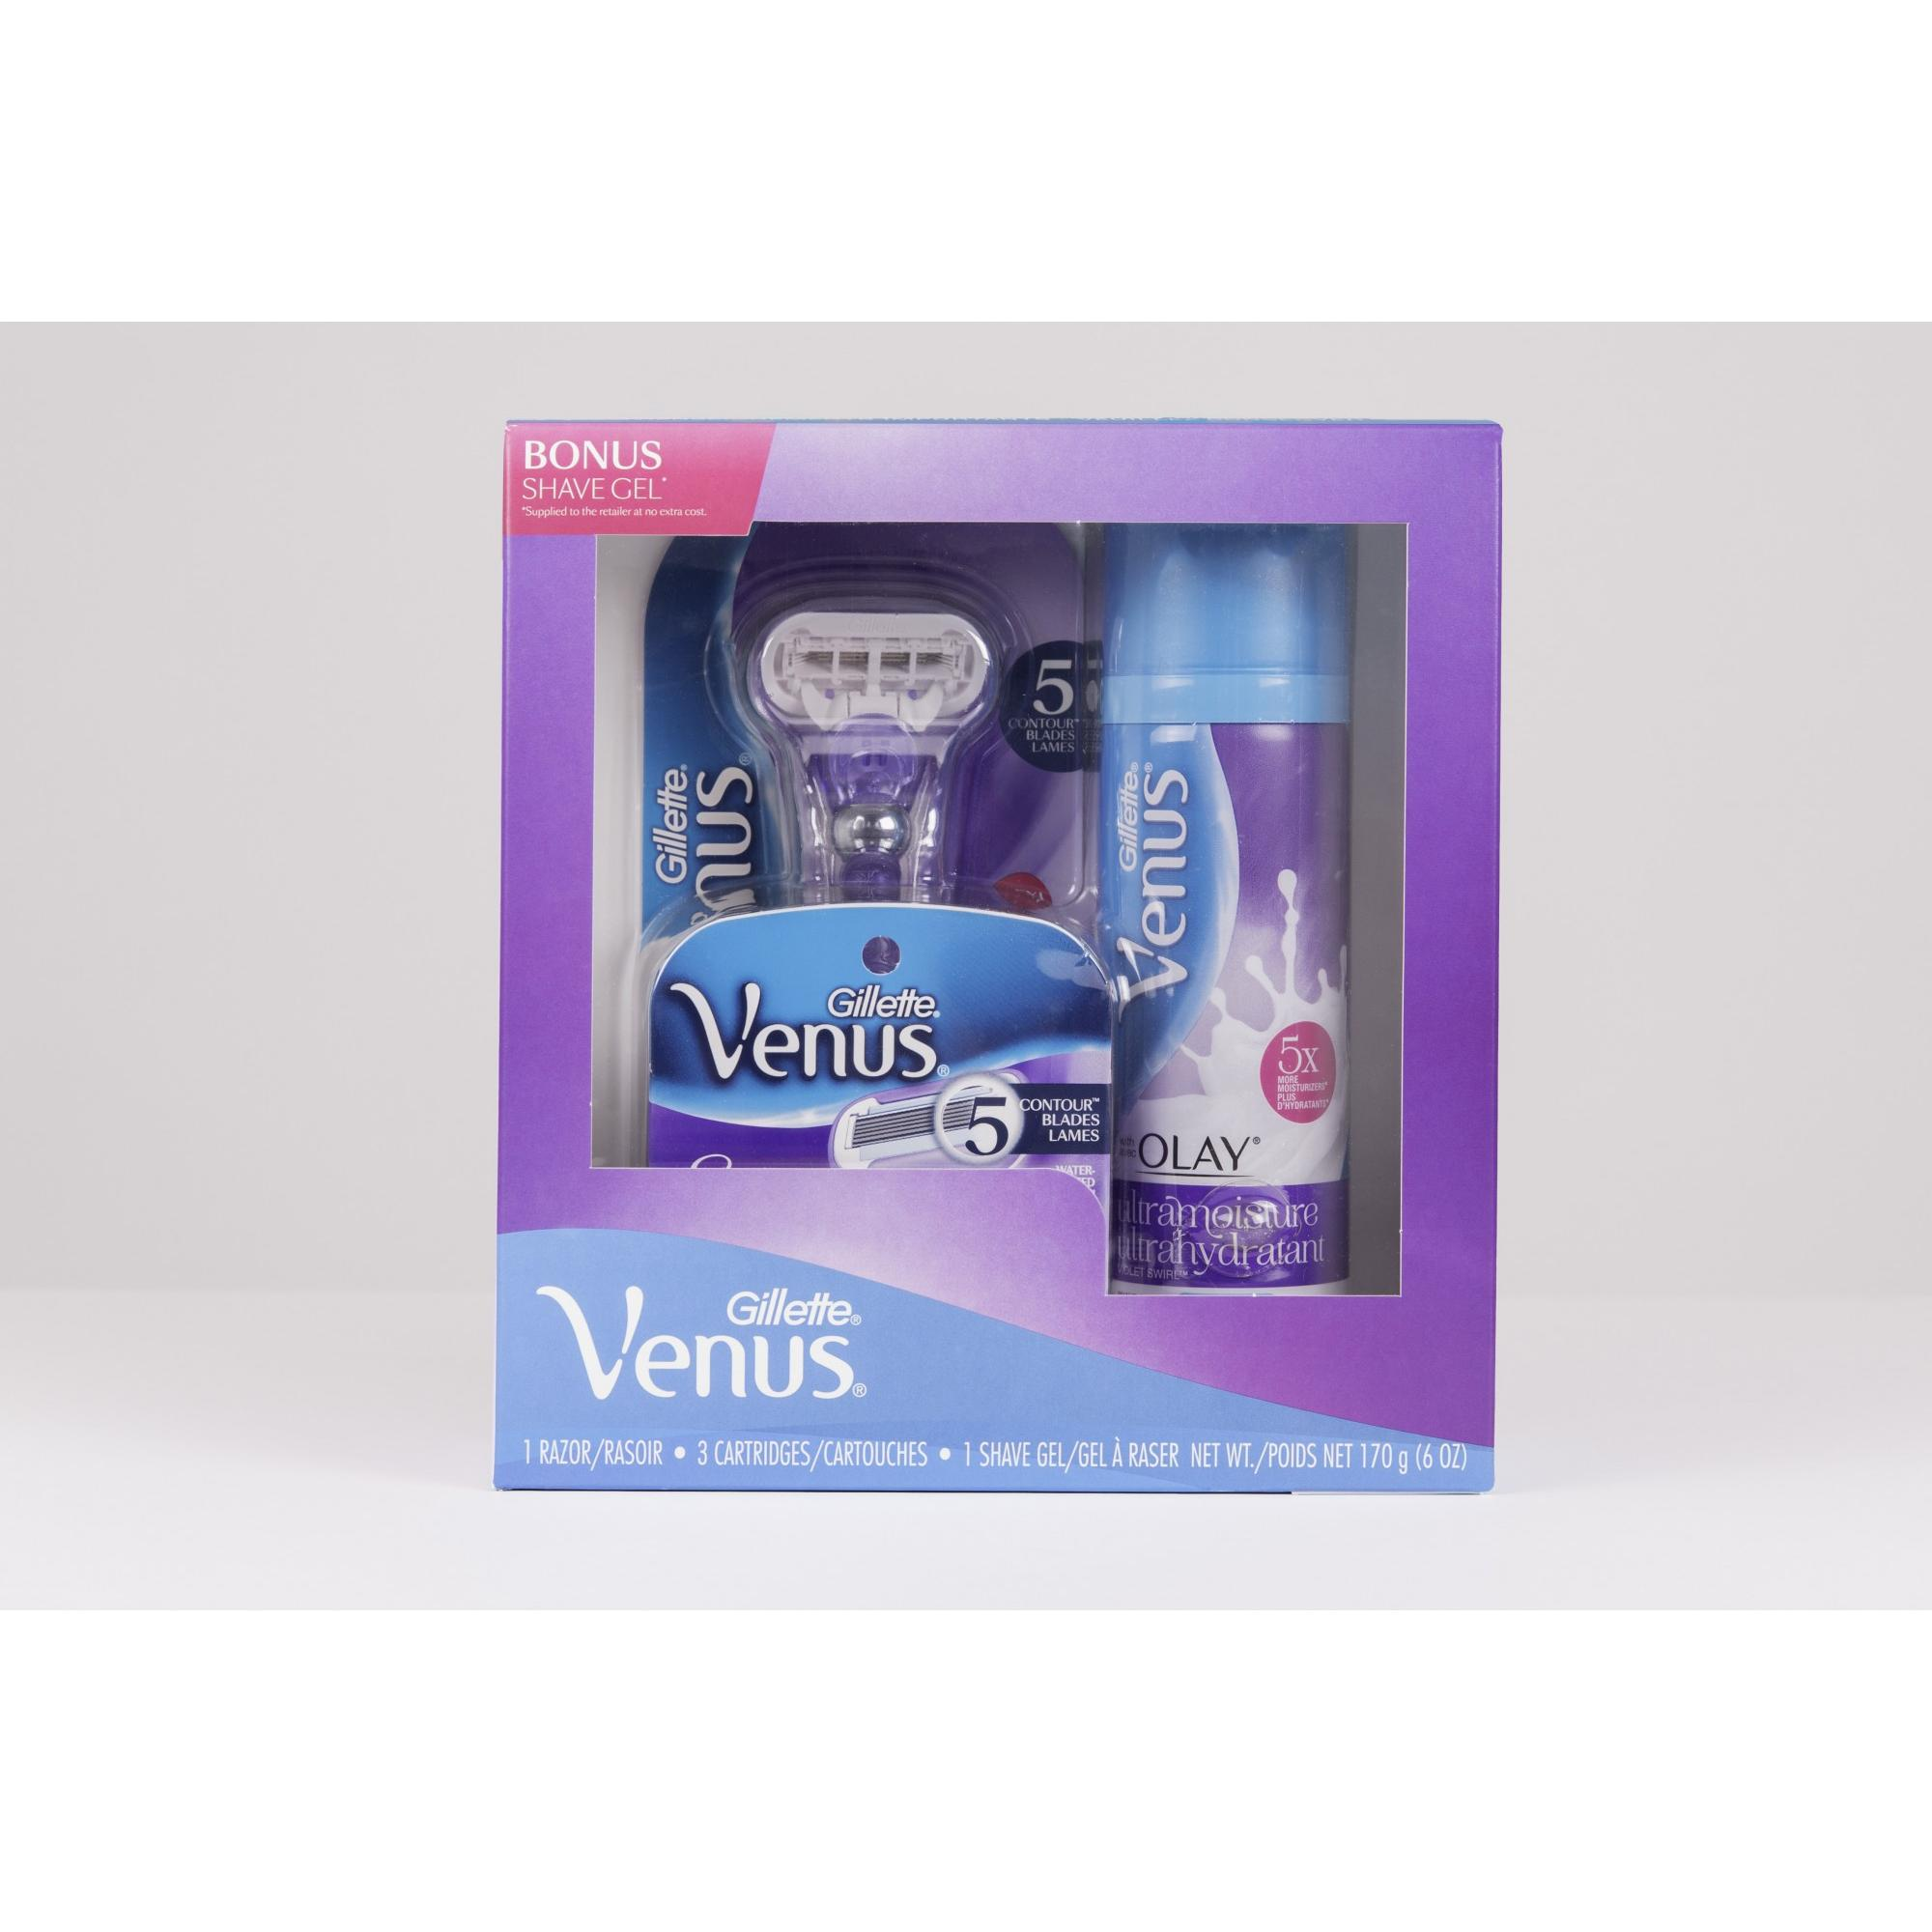 Gillette Venus Swirl Regimen Pack includes 1 Razor, 3 Cartridges and 1 Shave Gel